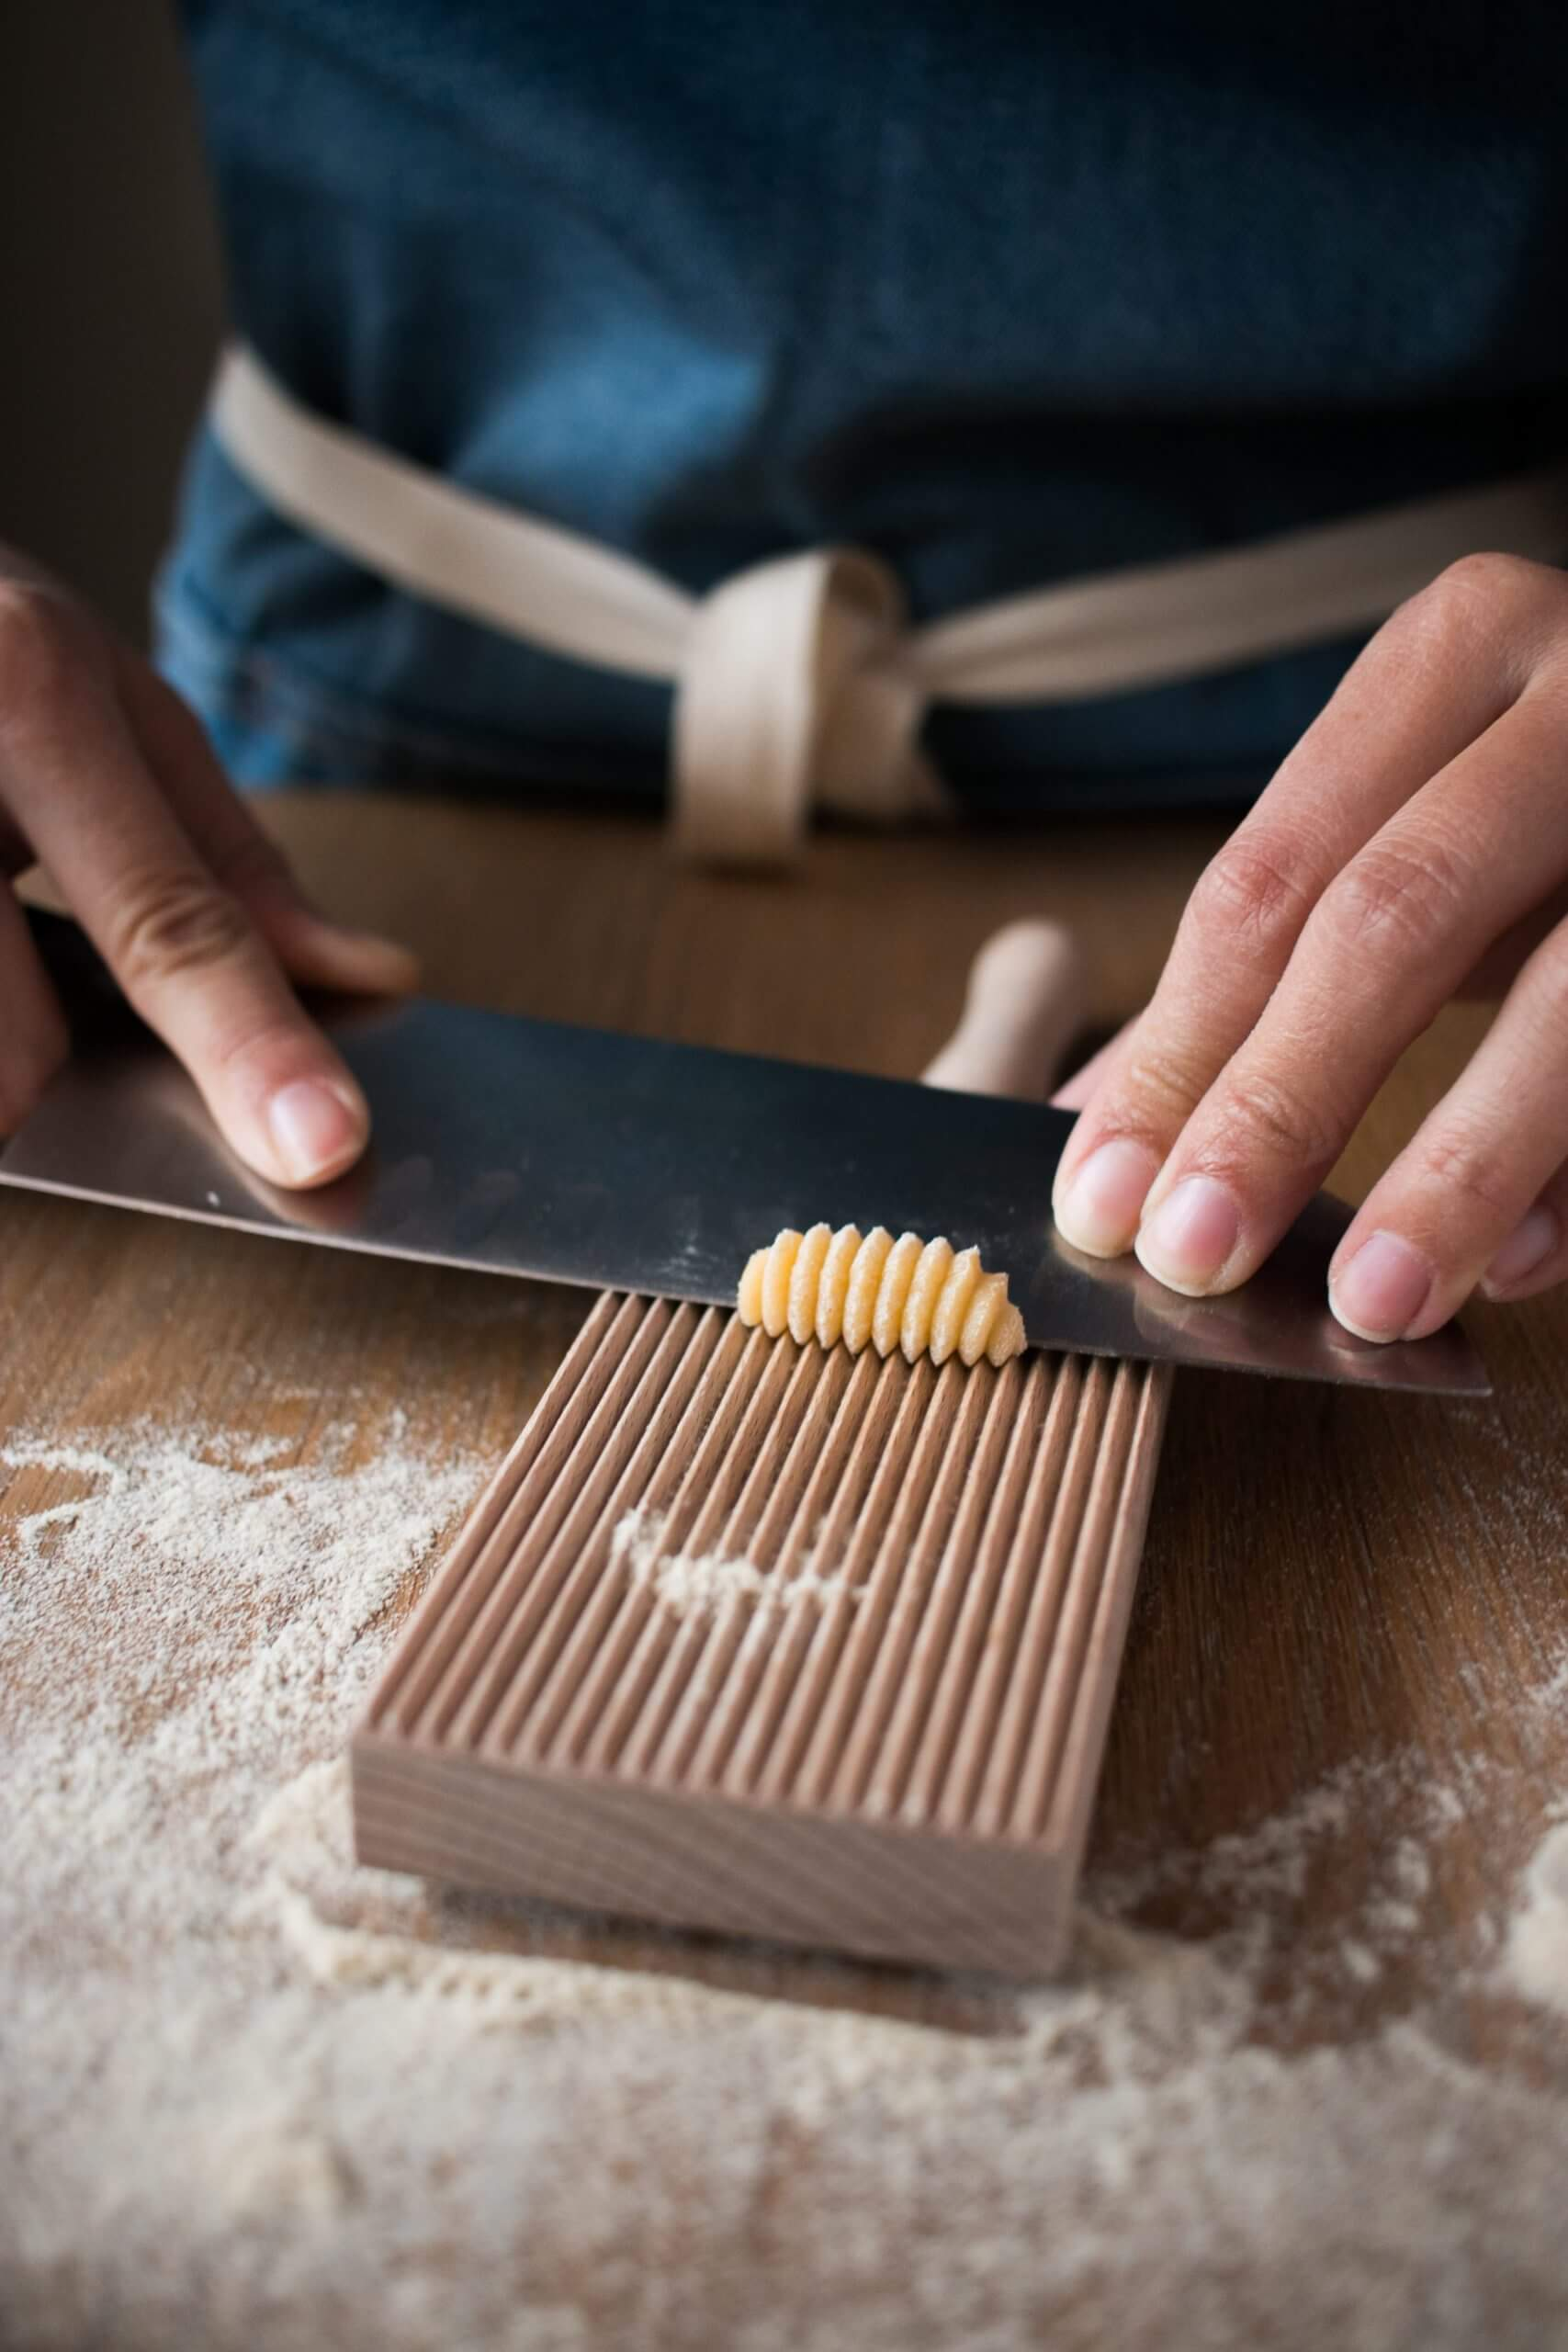 Experienced hands rolling out homemade gnocchi on a gnocchi roller board with a chef's knife.